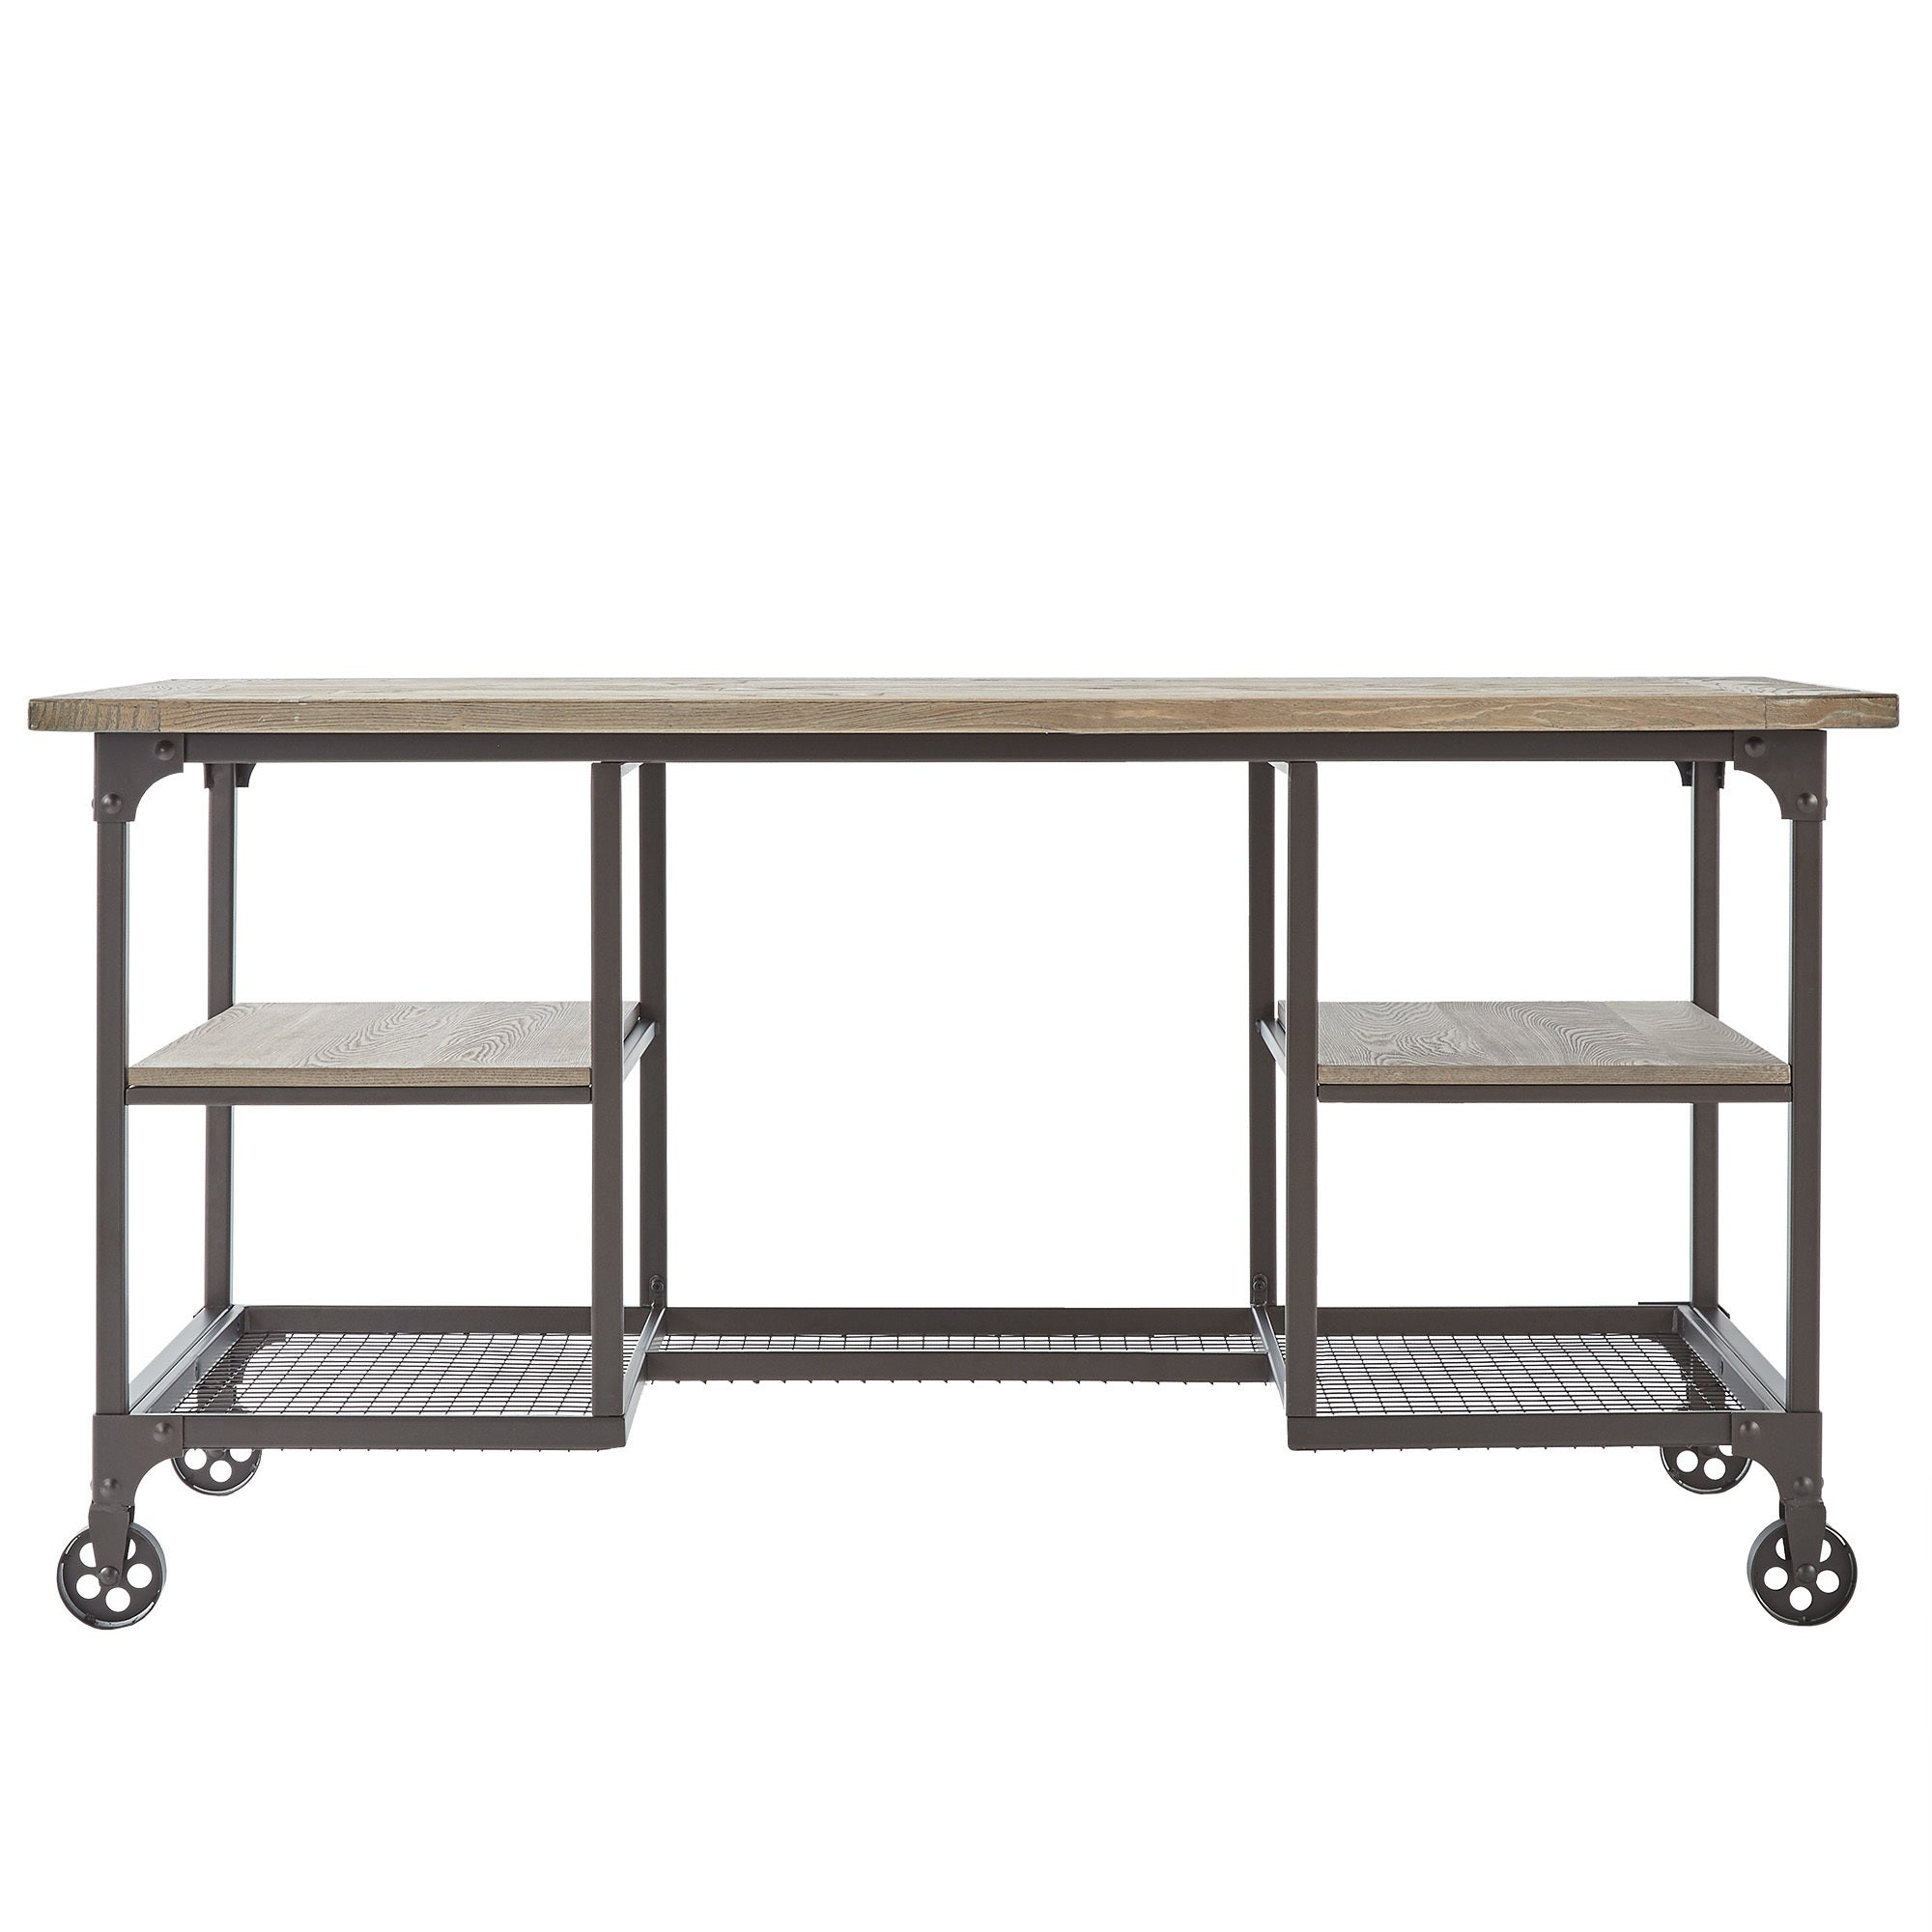 Dania Industrial Open Storage Desk by iNSPIRE Q Classic - Free Shipping  Today - Overstock.com - 25813098